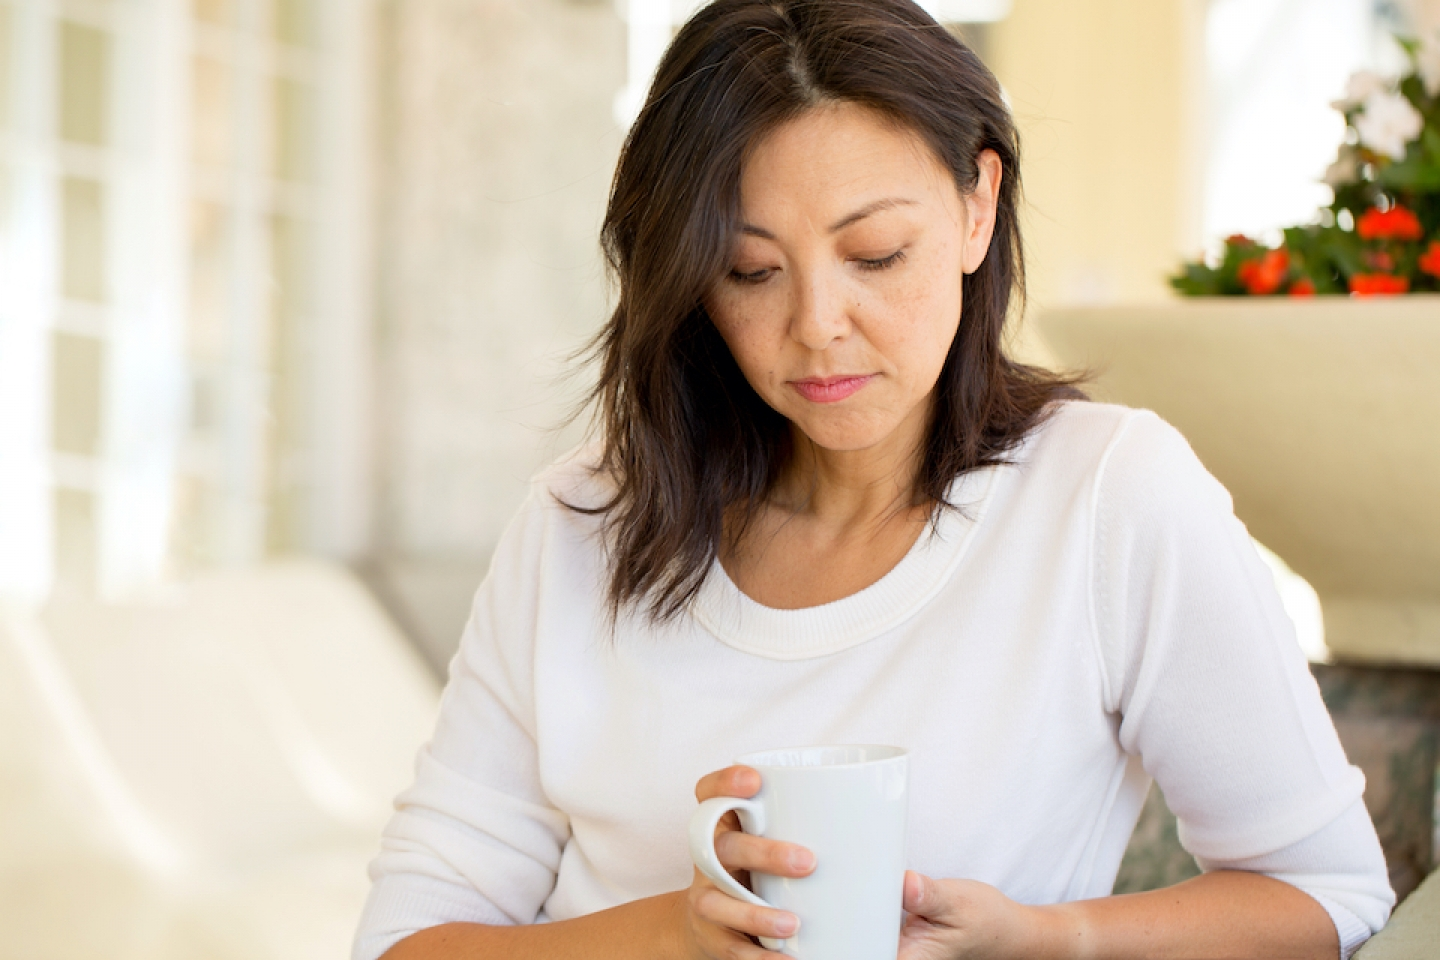 woman looks down at cup